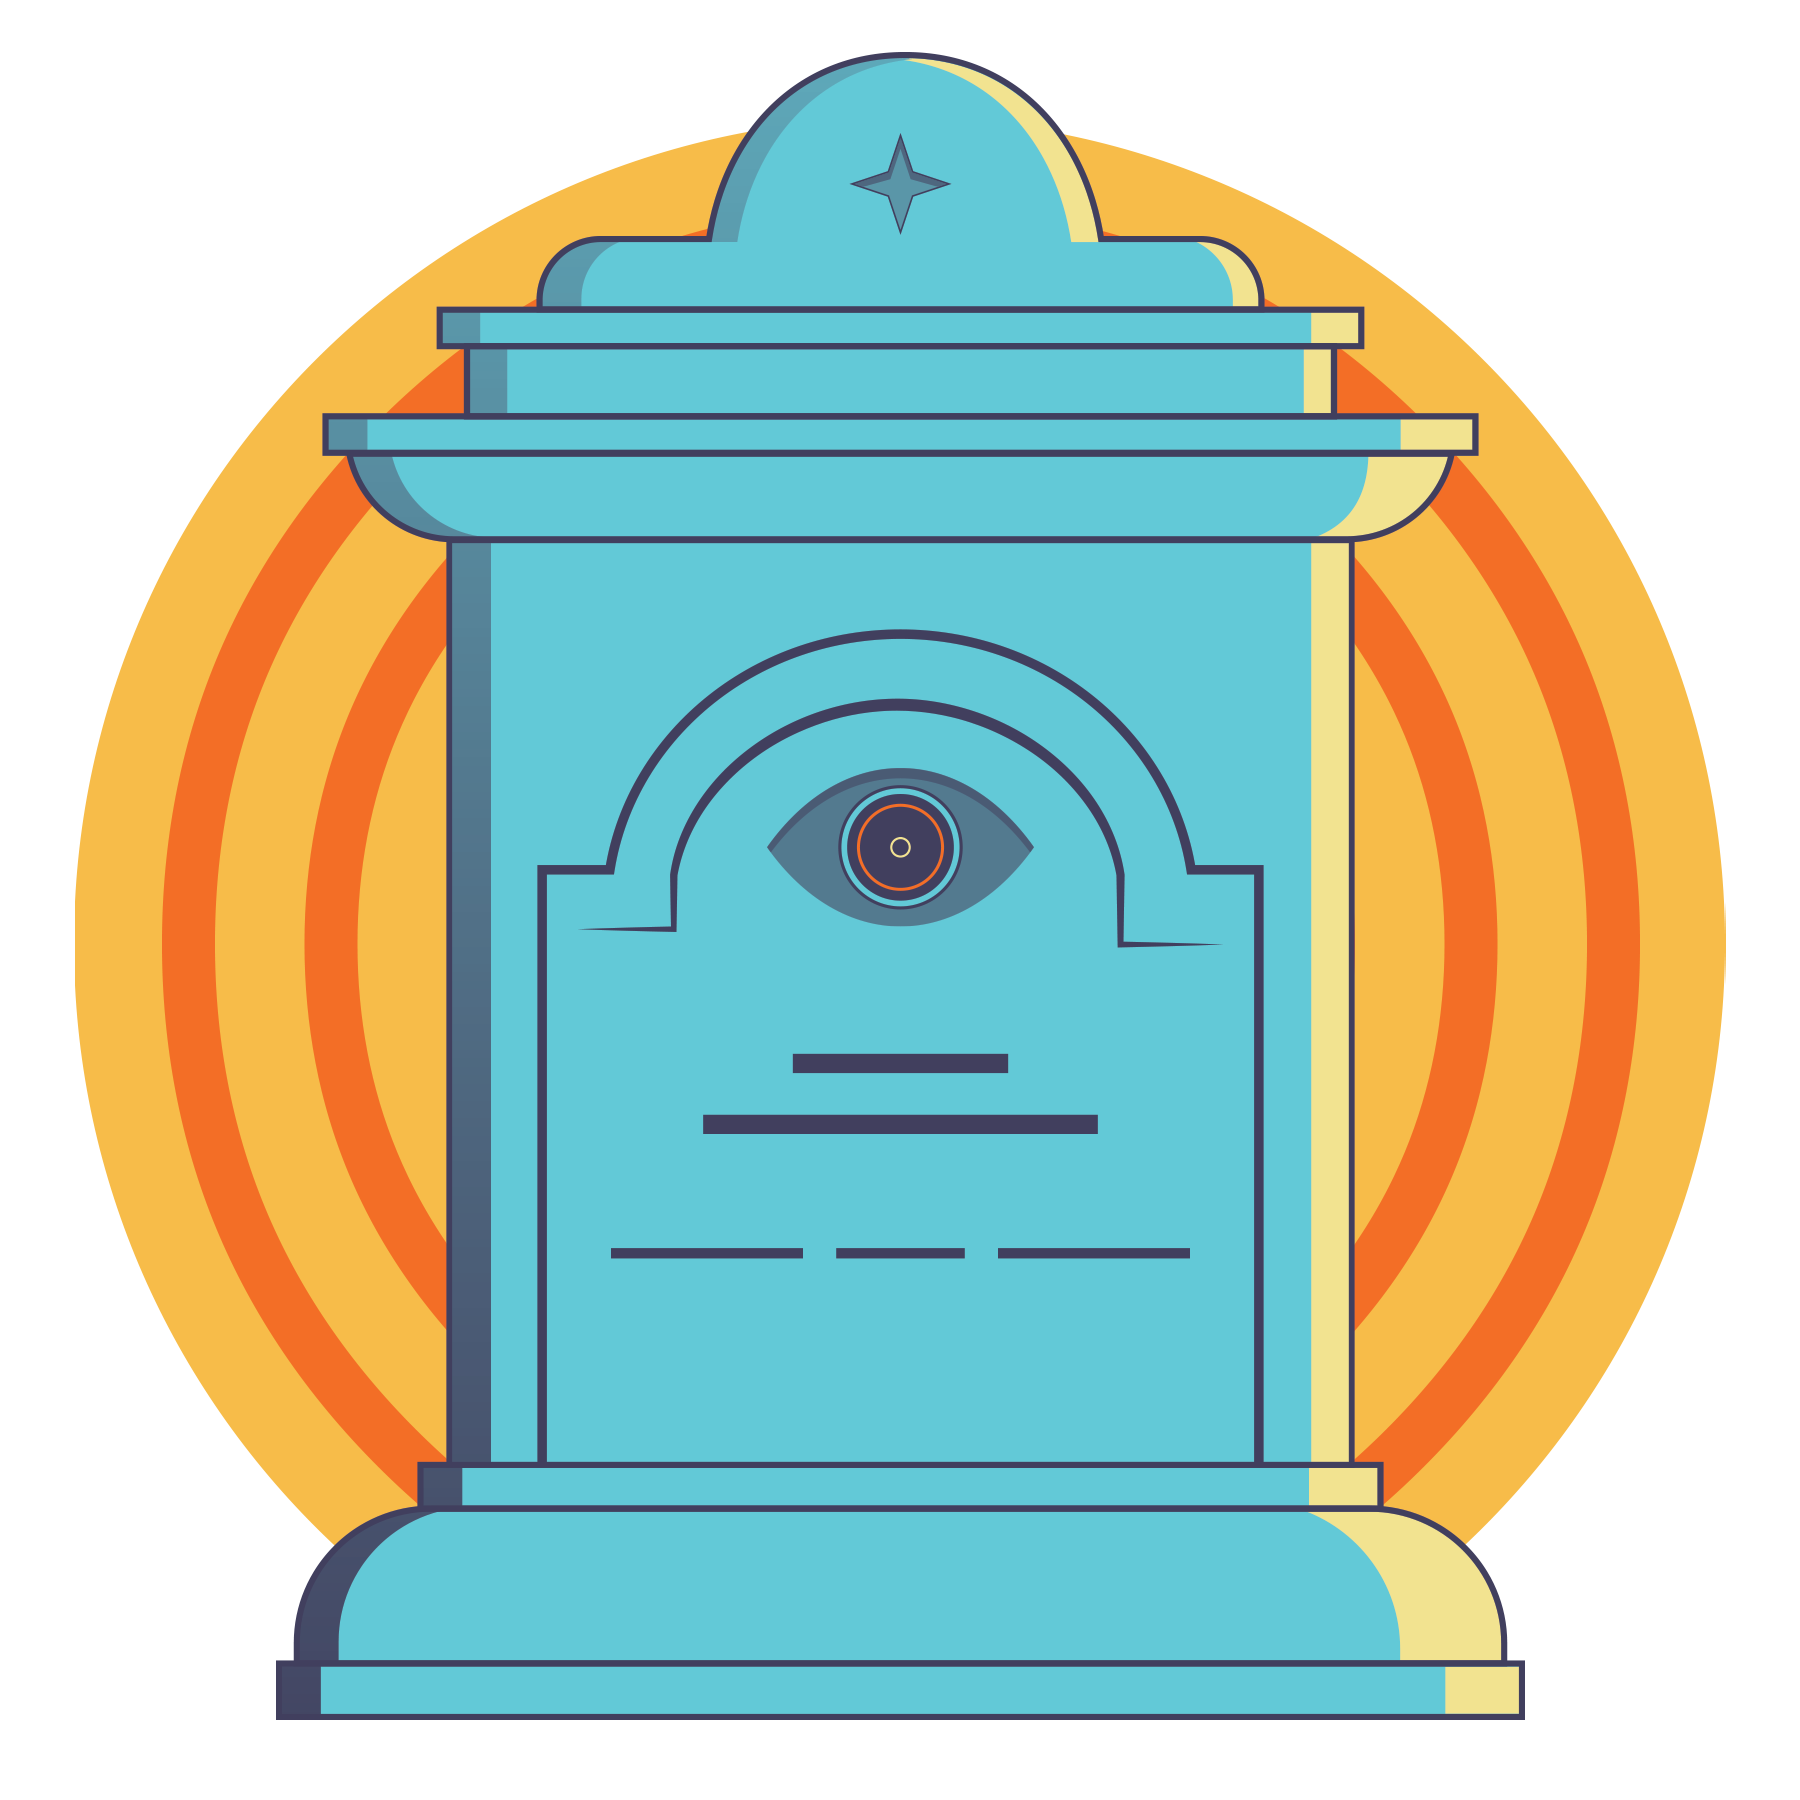 An illustration of a tombstone with an eye carved into the center